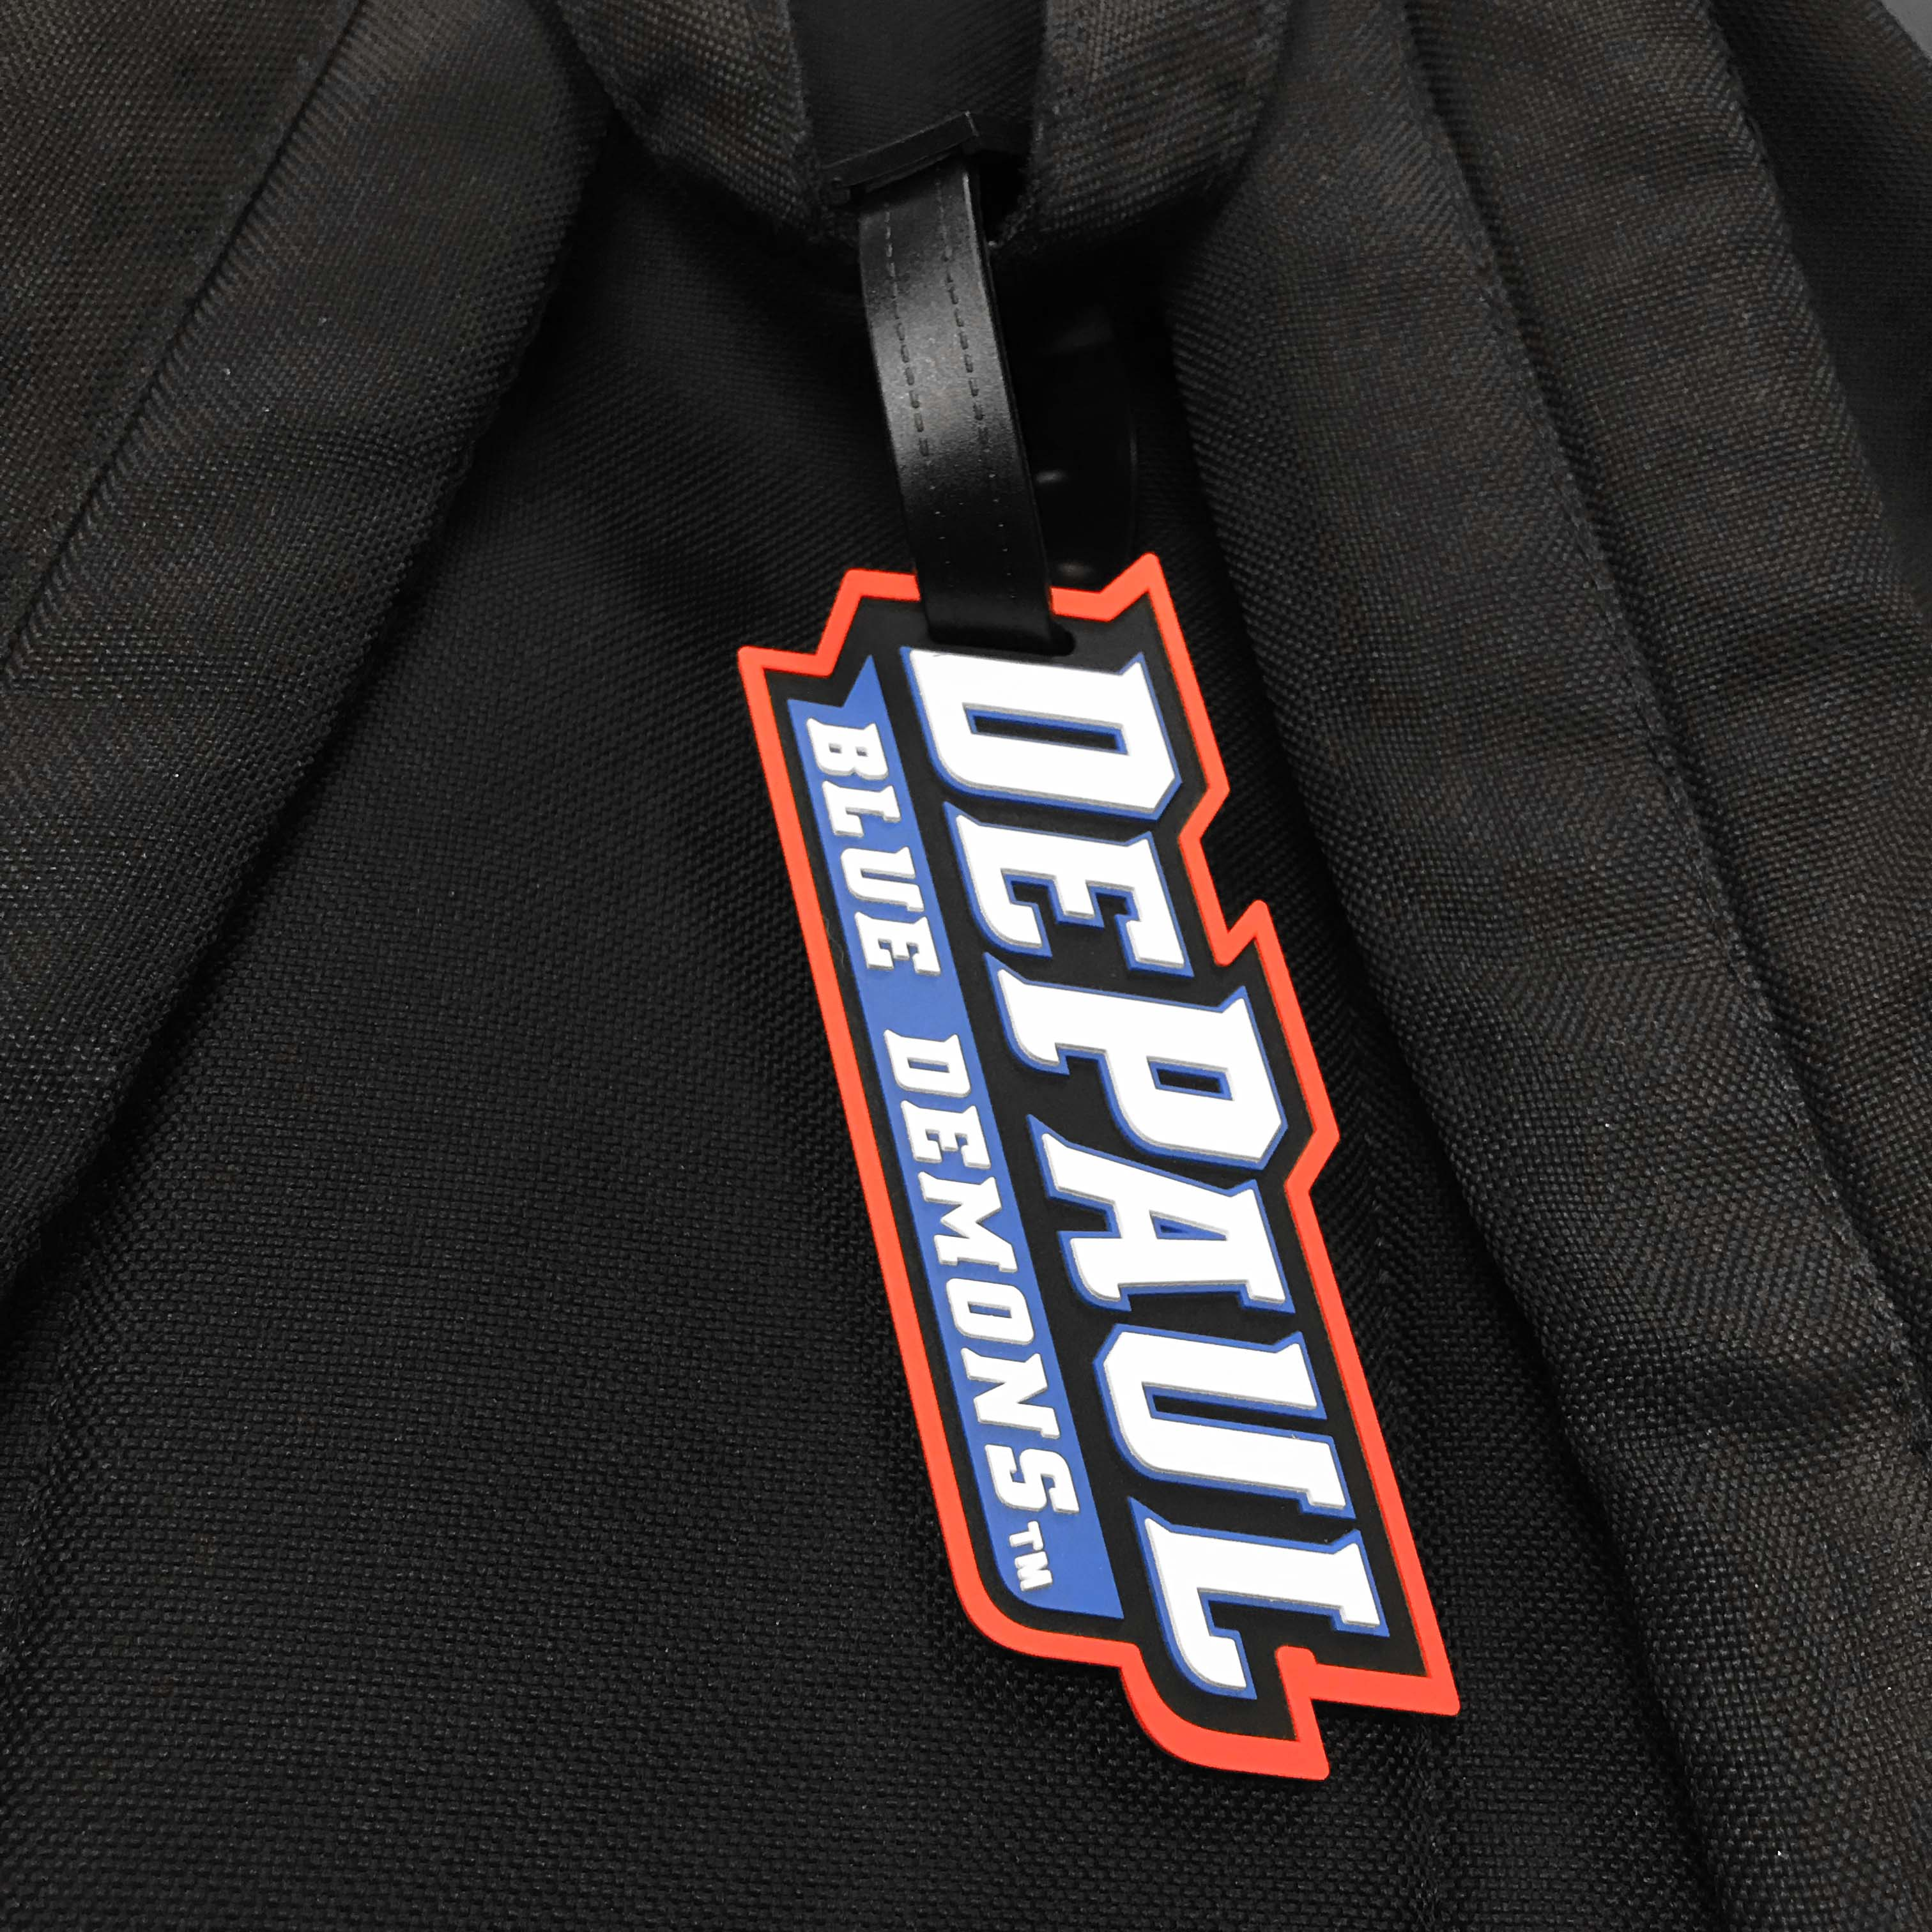 DePaul Blue Demons hanging tag.